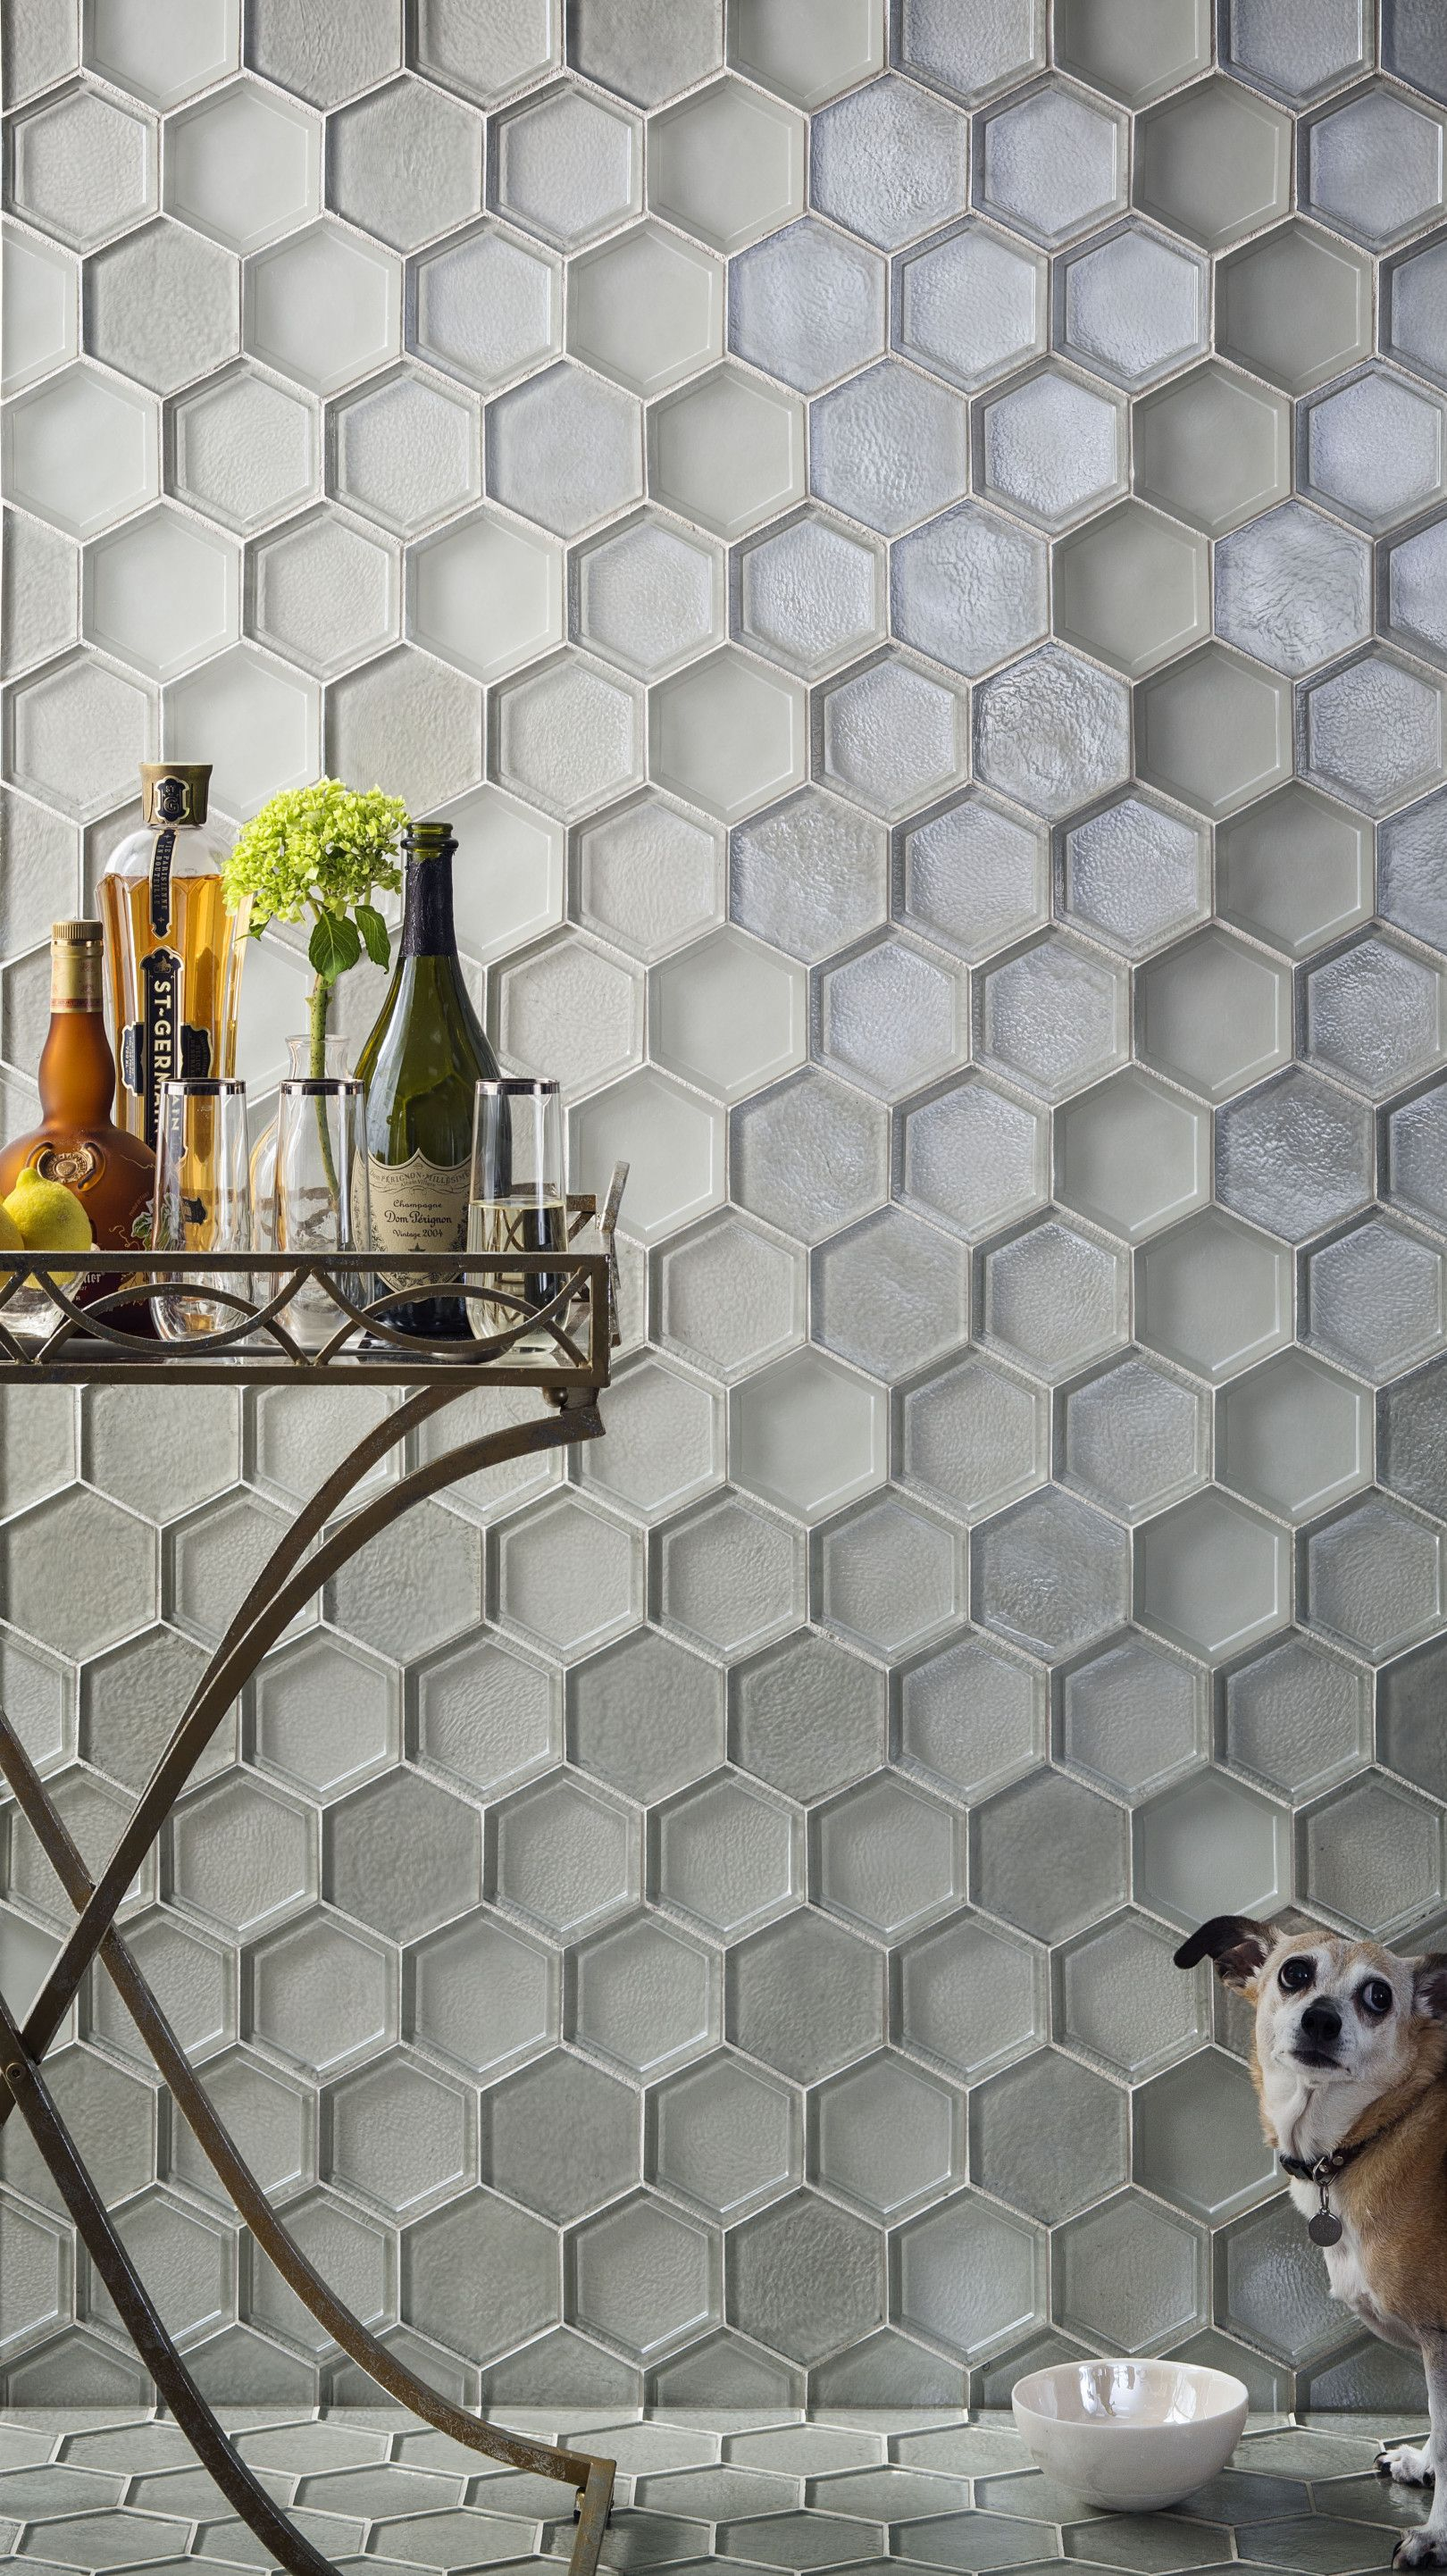 Glass tile tile interior design tozen tile feature for Dimensional tile backsplash